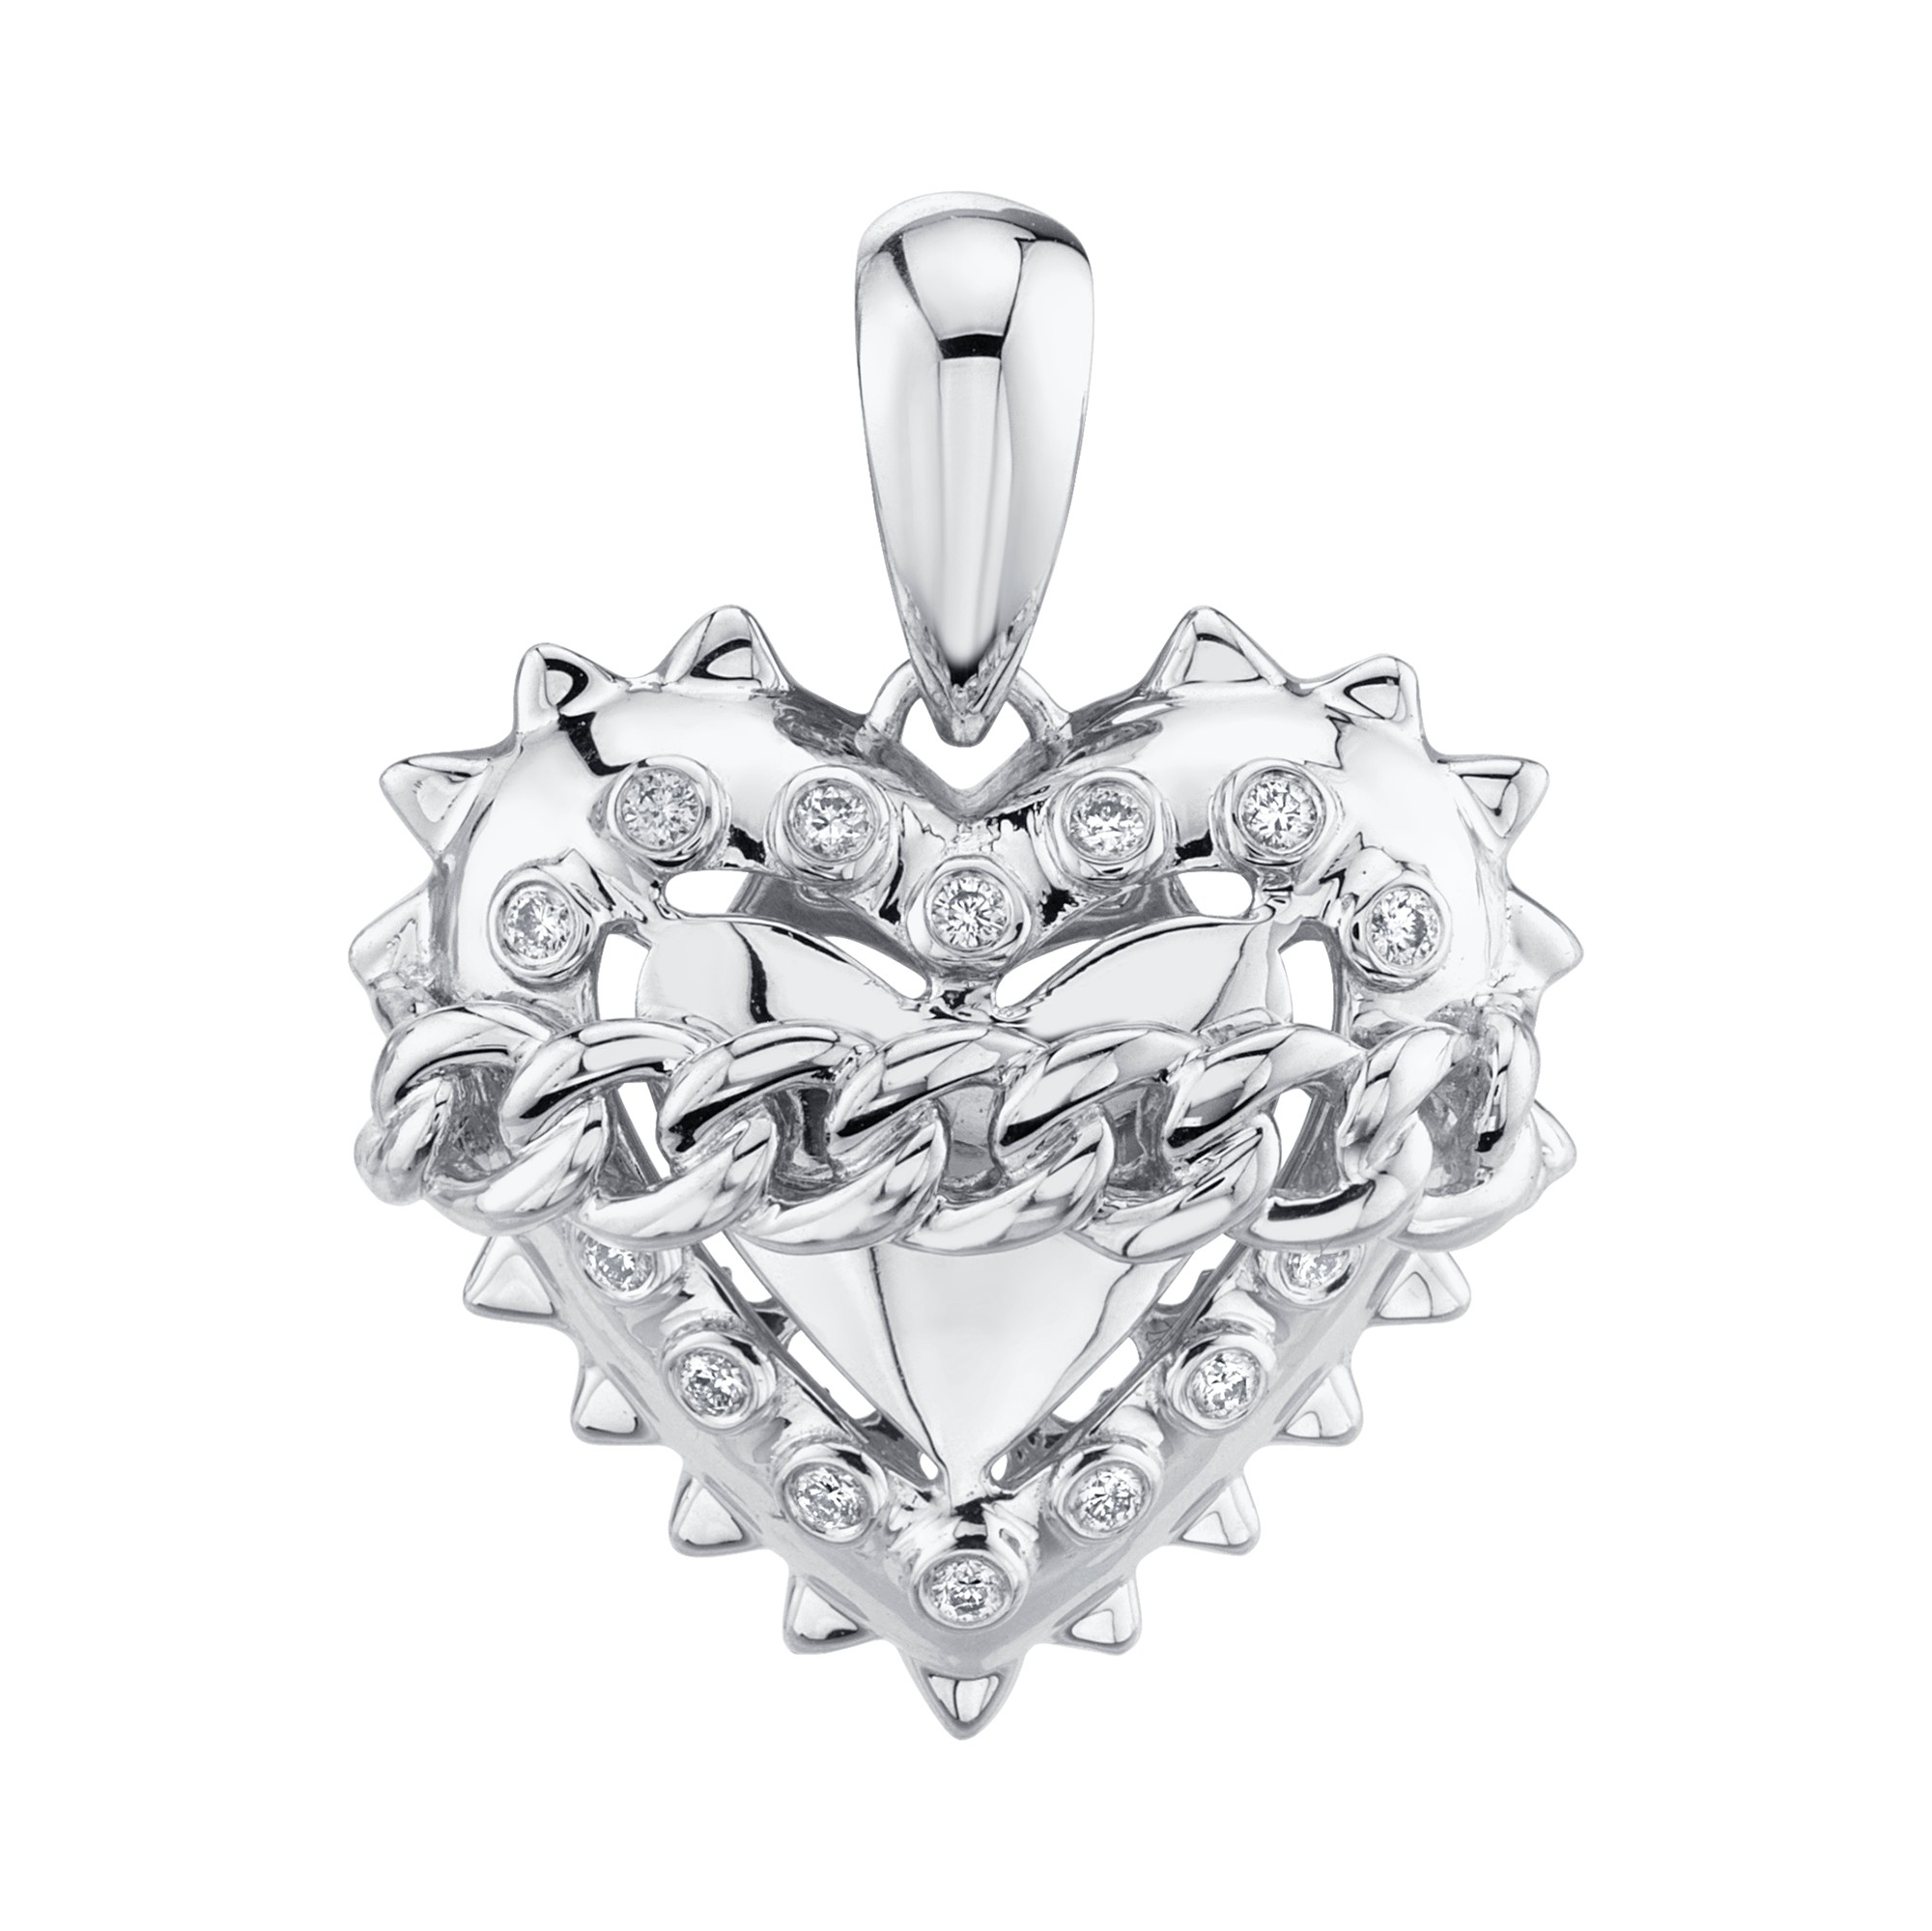 14k White Gold Diamond Link Chain Heart Charm